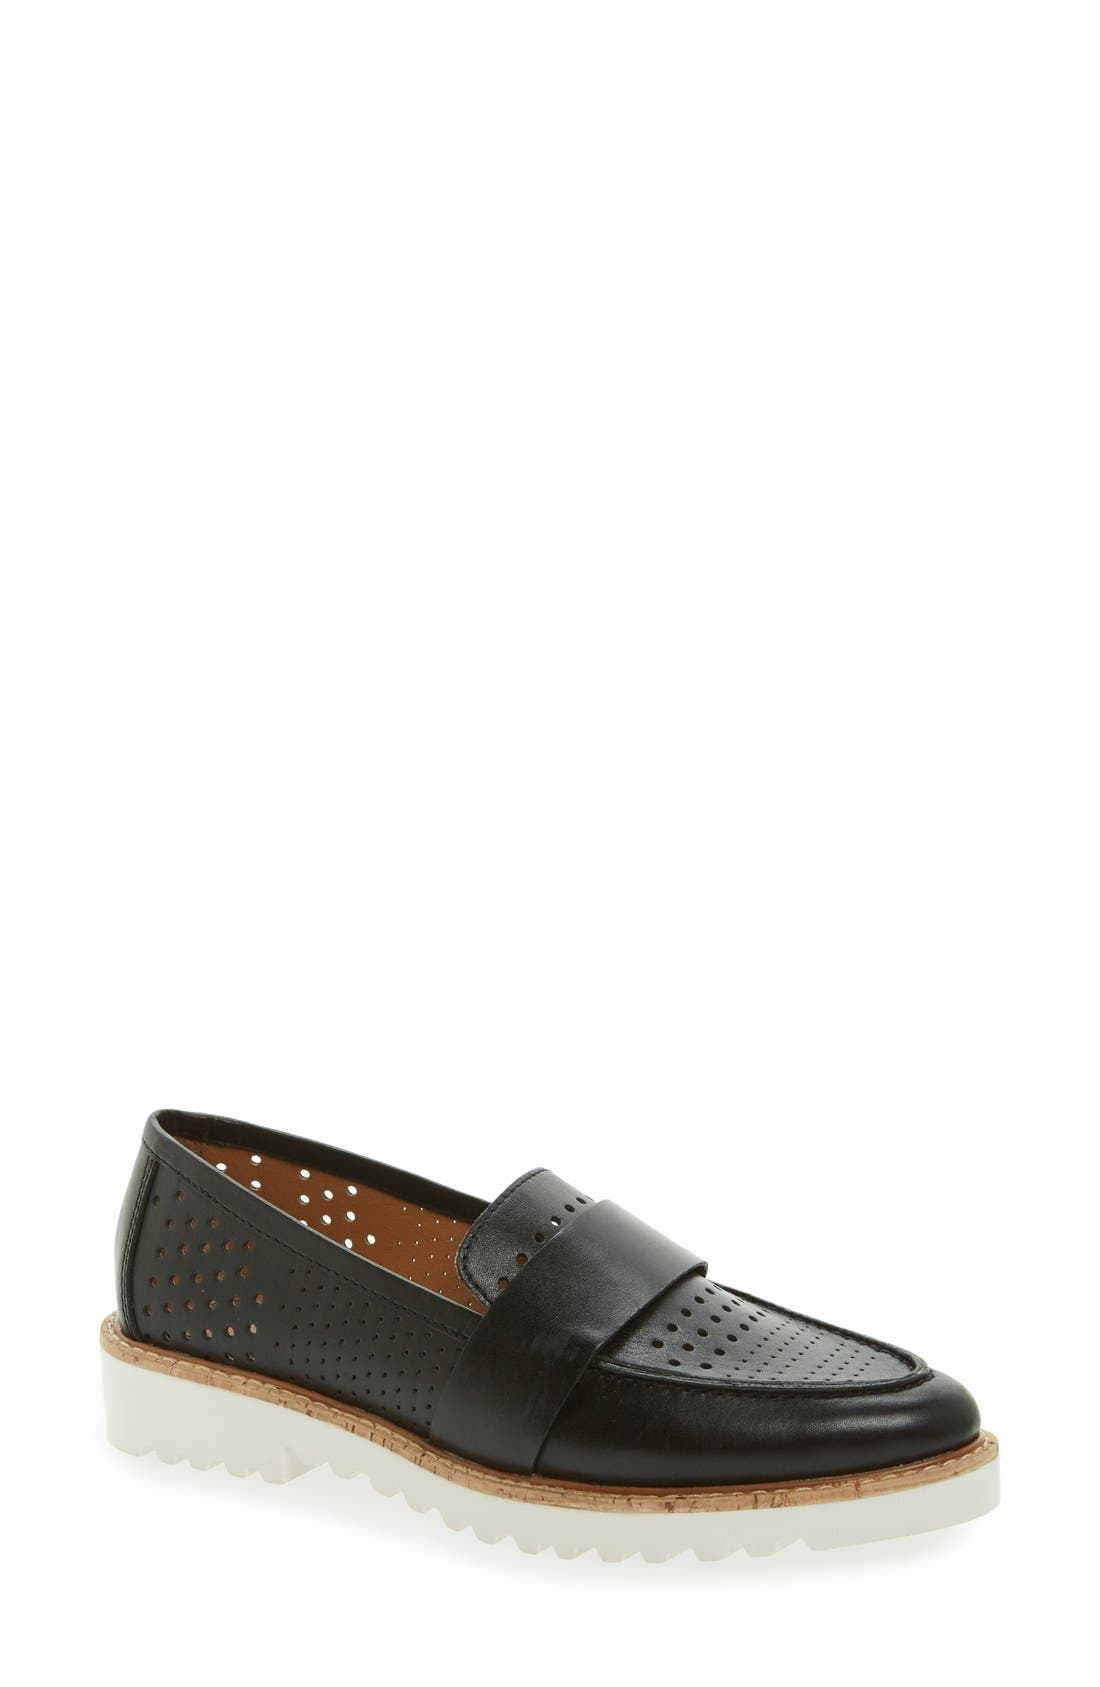 Alternate Image 1 Selected - Halogen® 'Emily' Loafer (Women)